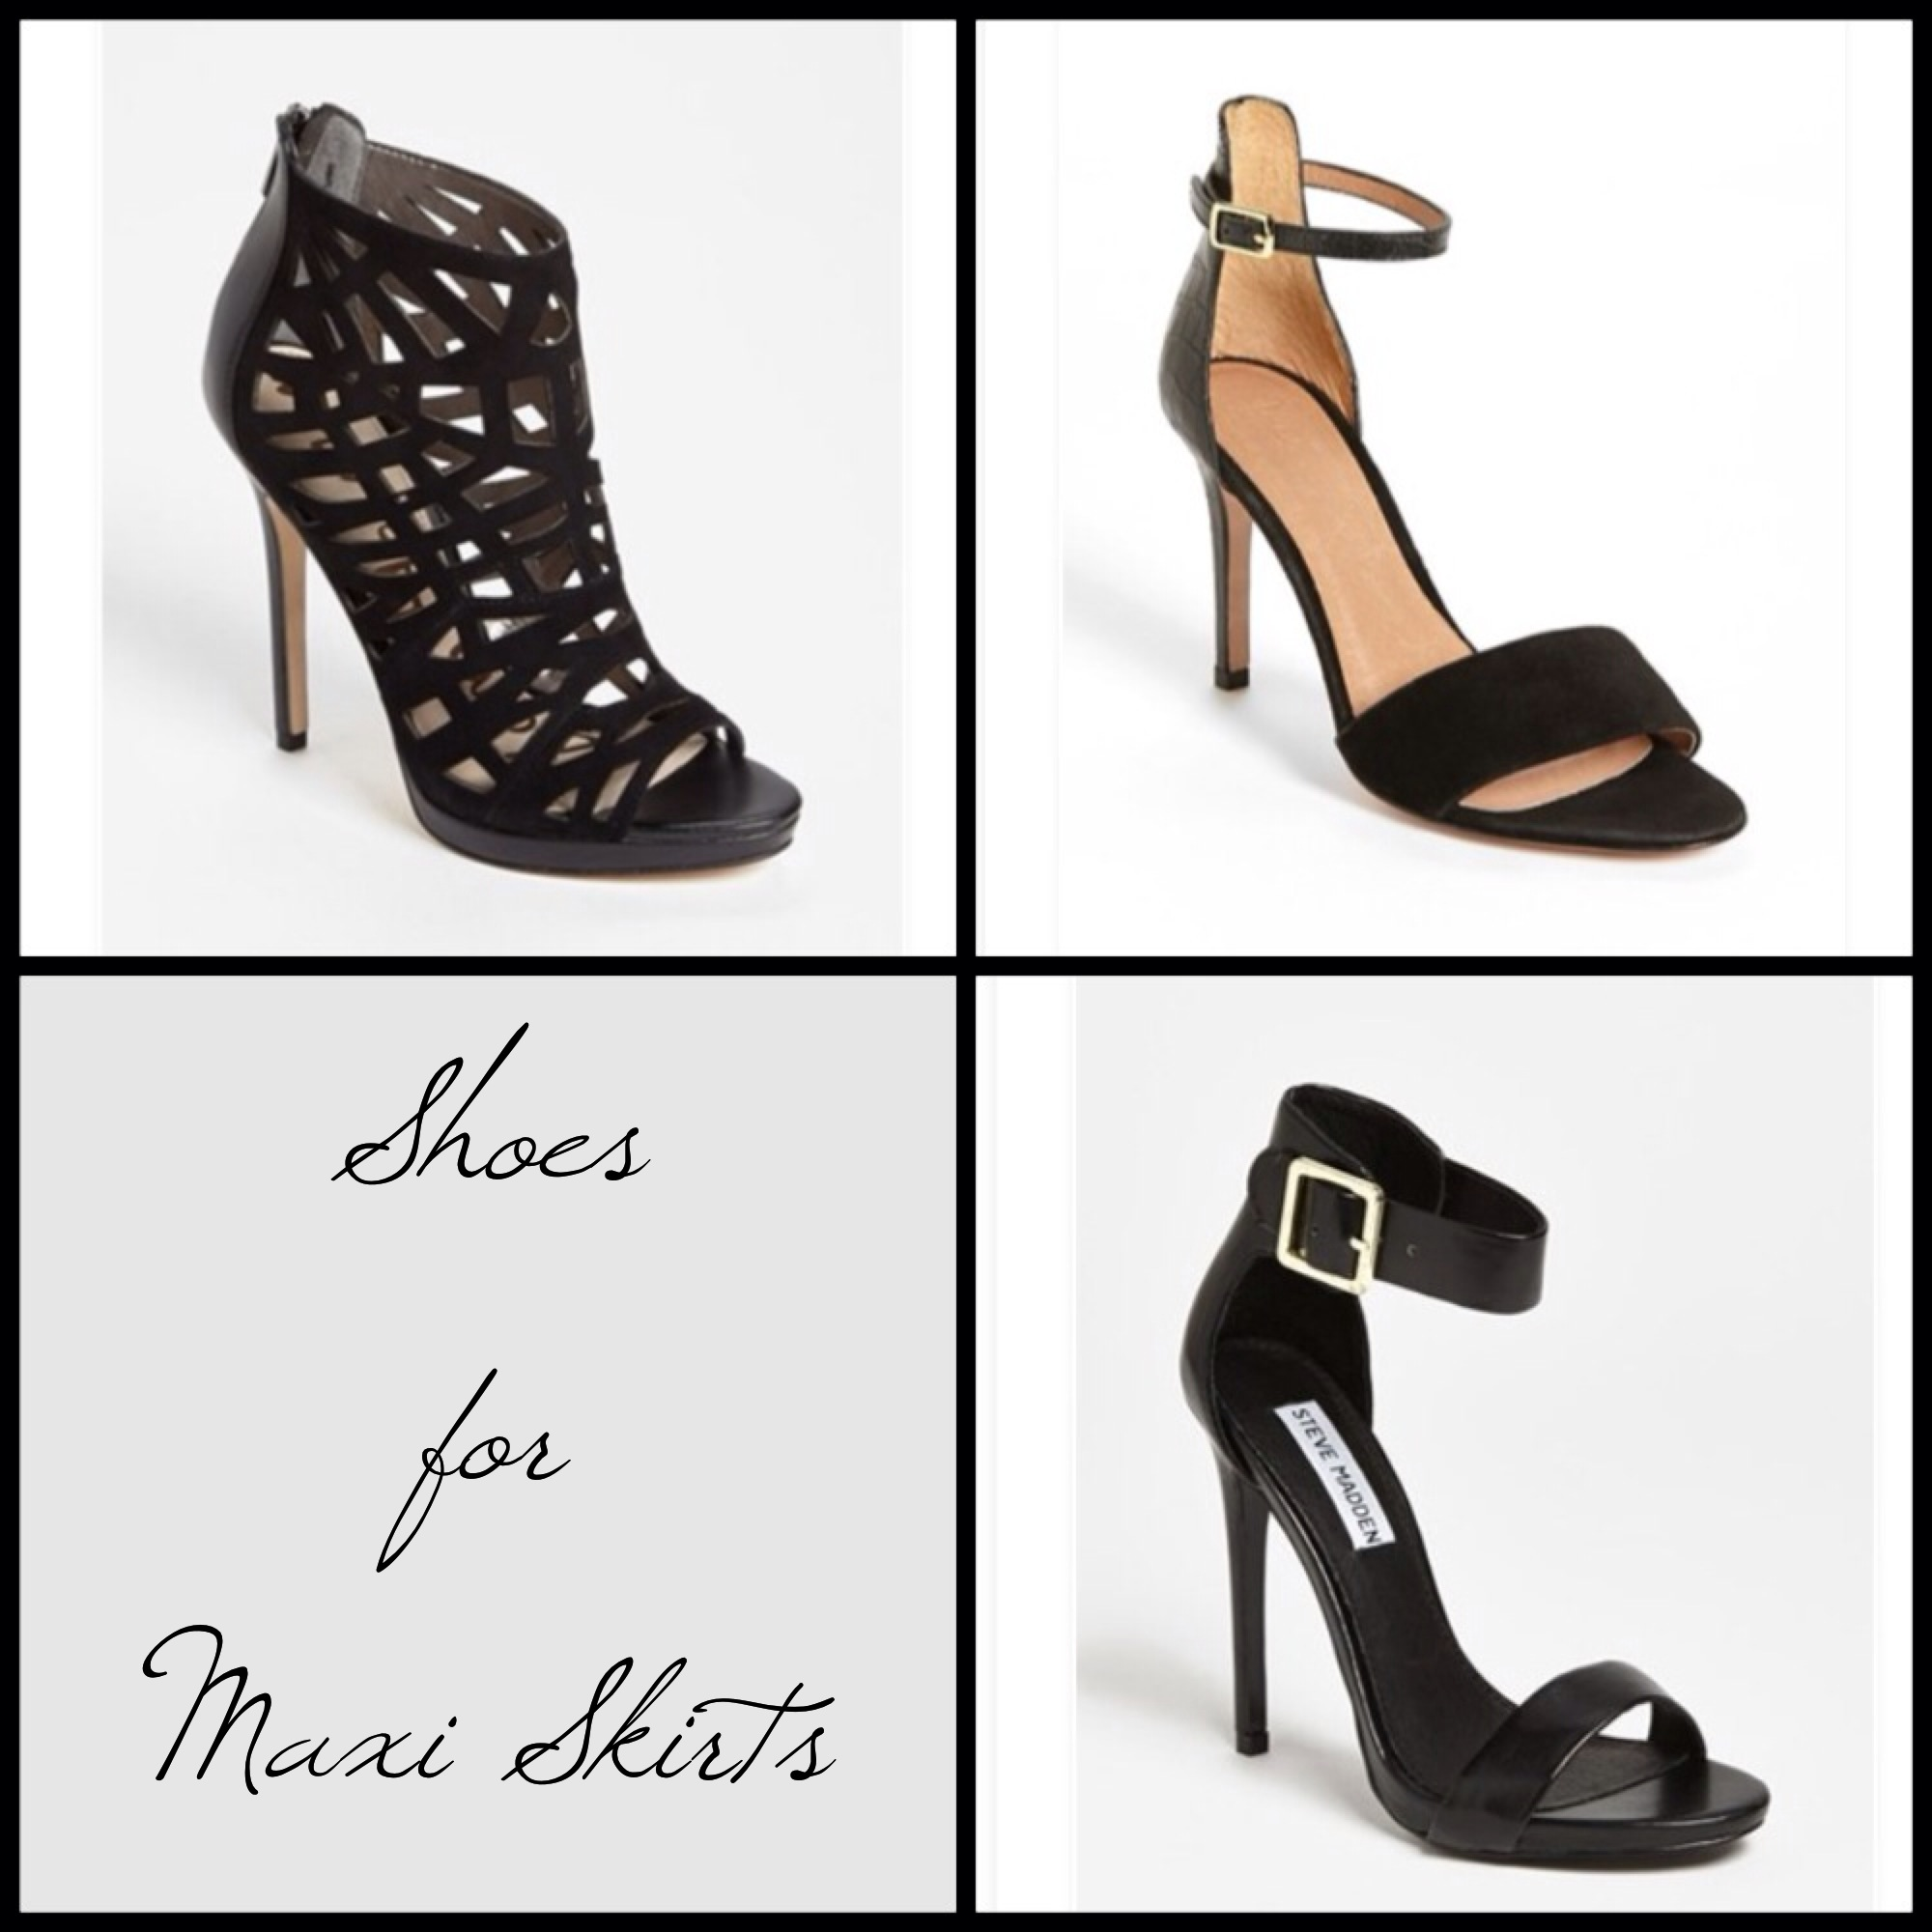 the shoes to wear with maxi skirts htwe